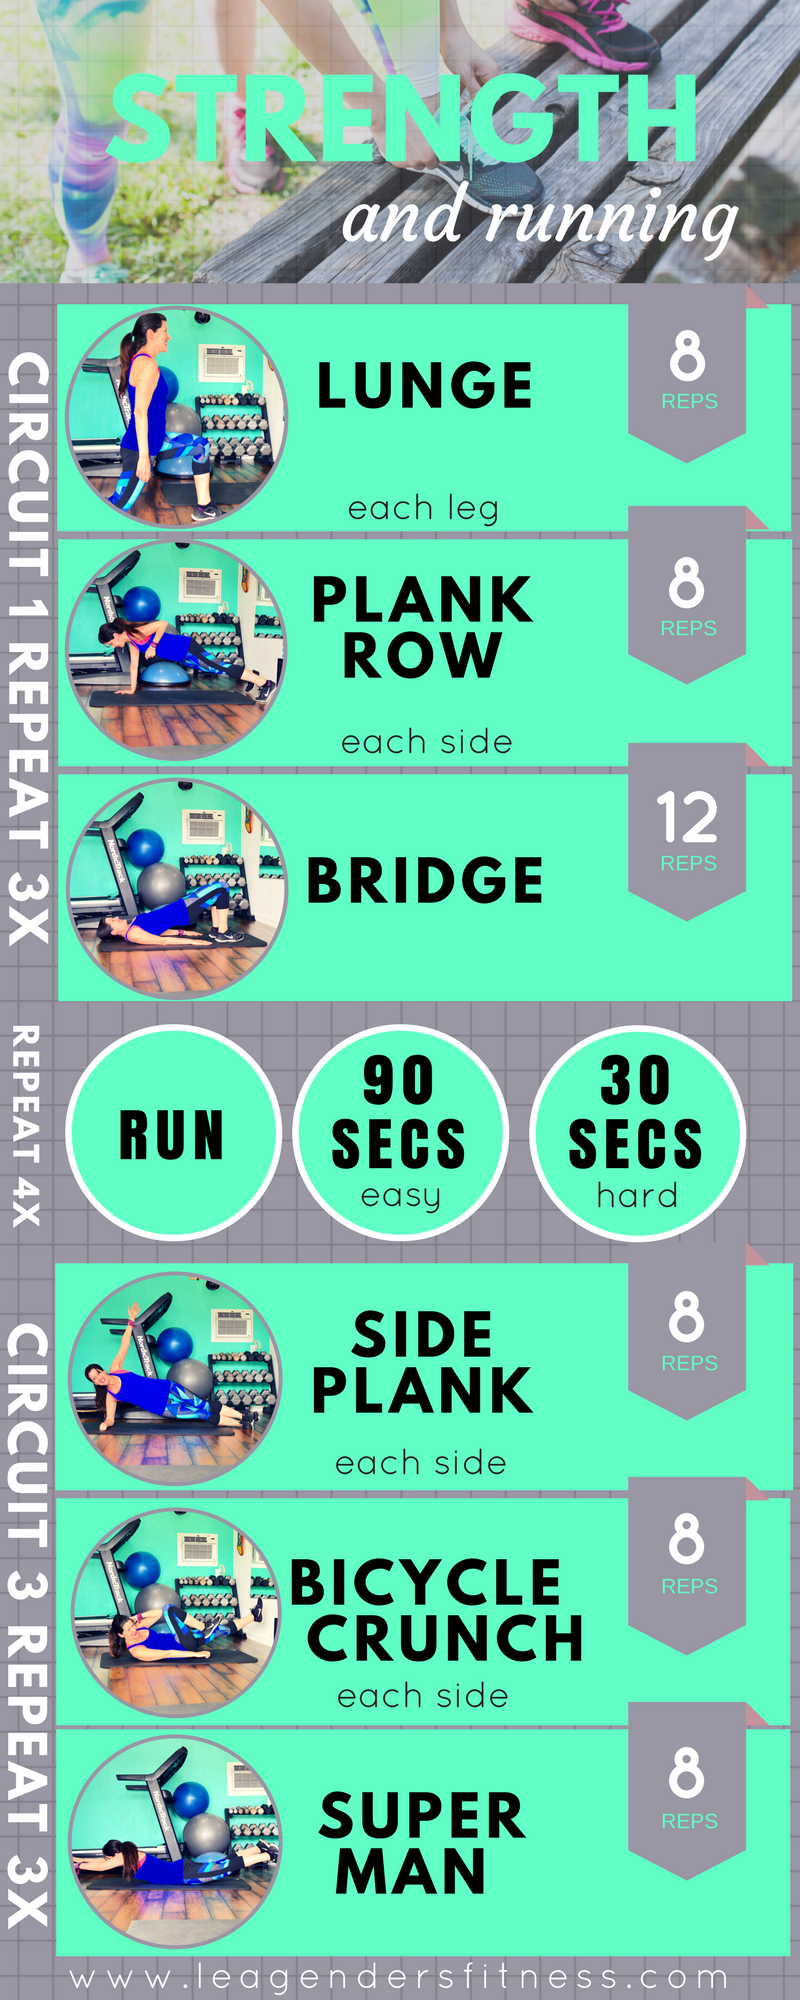 strength and running workout. Free PDF printable download. Save to Pinterest for later